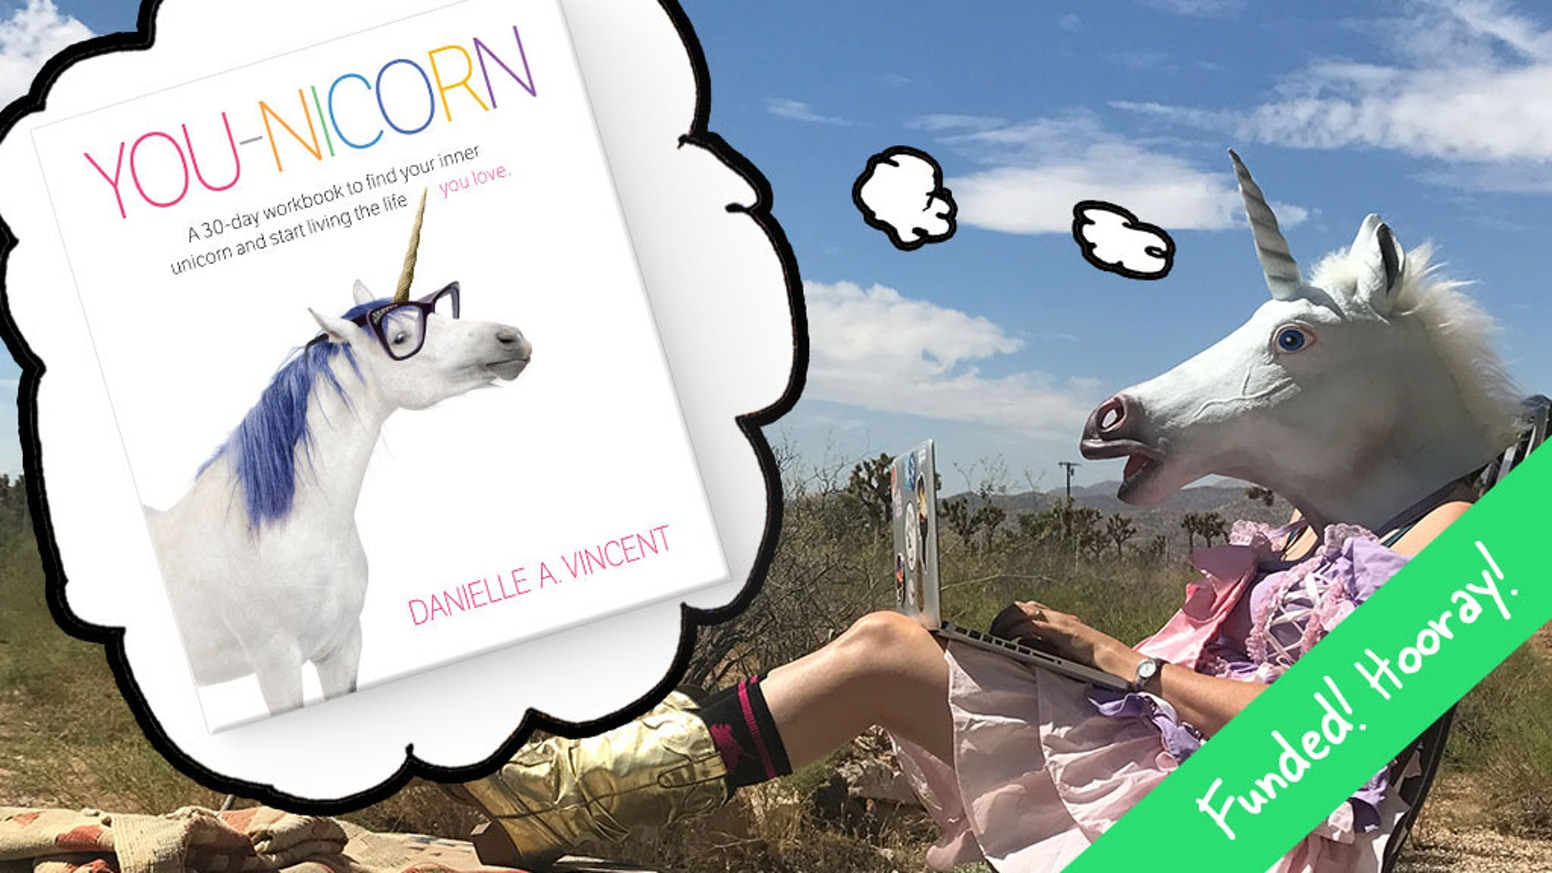 Workbooks workbook live : YOU-NICORN: A 30-day workbook to find your inner unicorn by ...